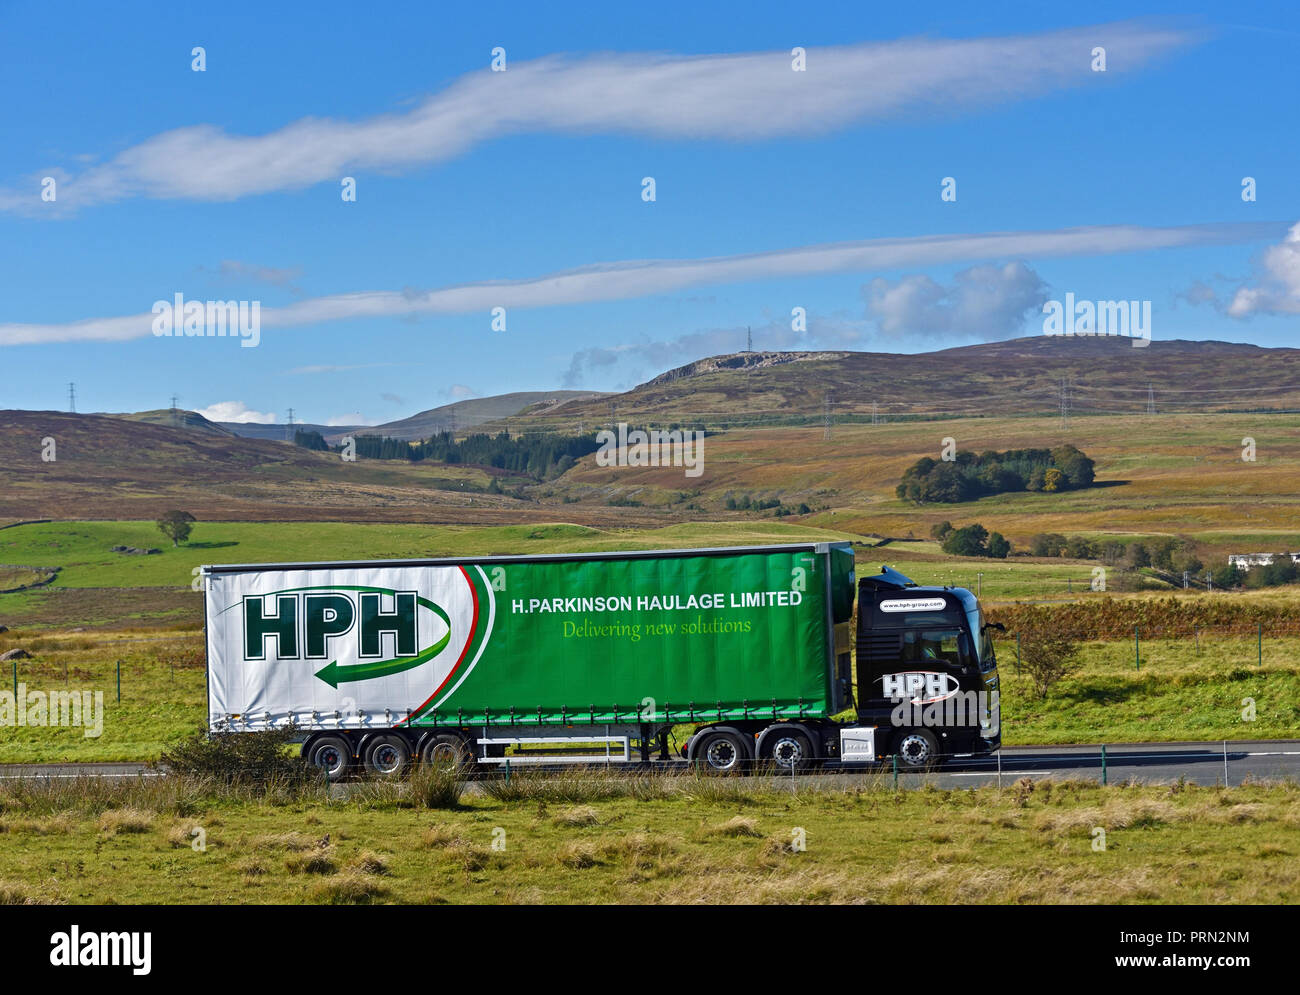 H. Parkinson Haulage Limited HGV. Delivering new solutions . M6 Northbound carriageway, Shap, Cumbria, England, United Kingdom, Europe. - Stock Image